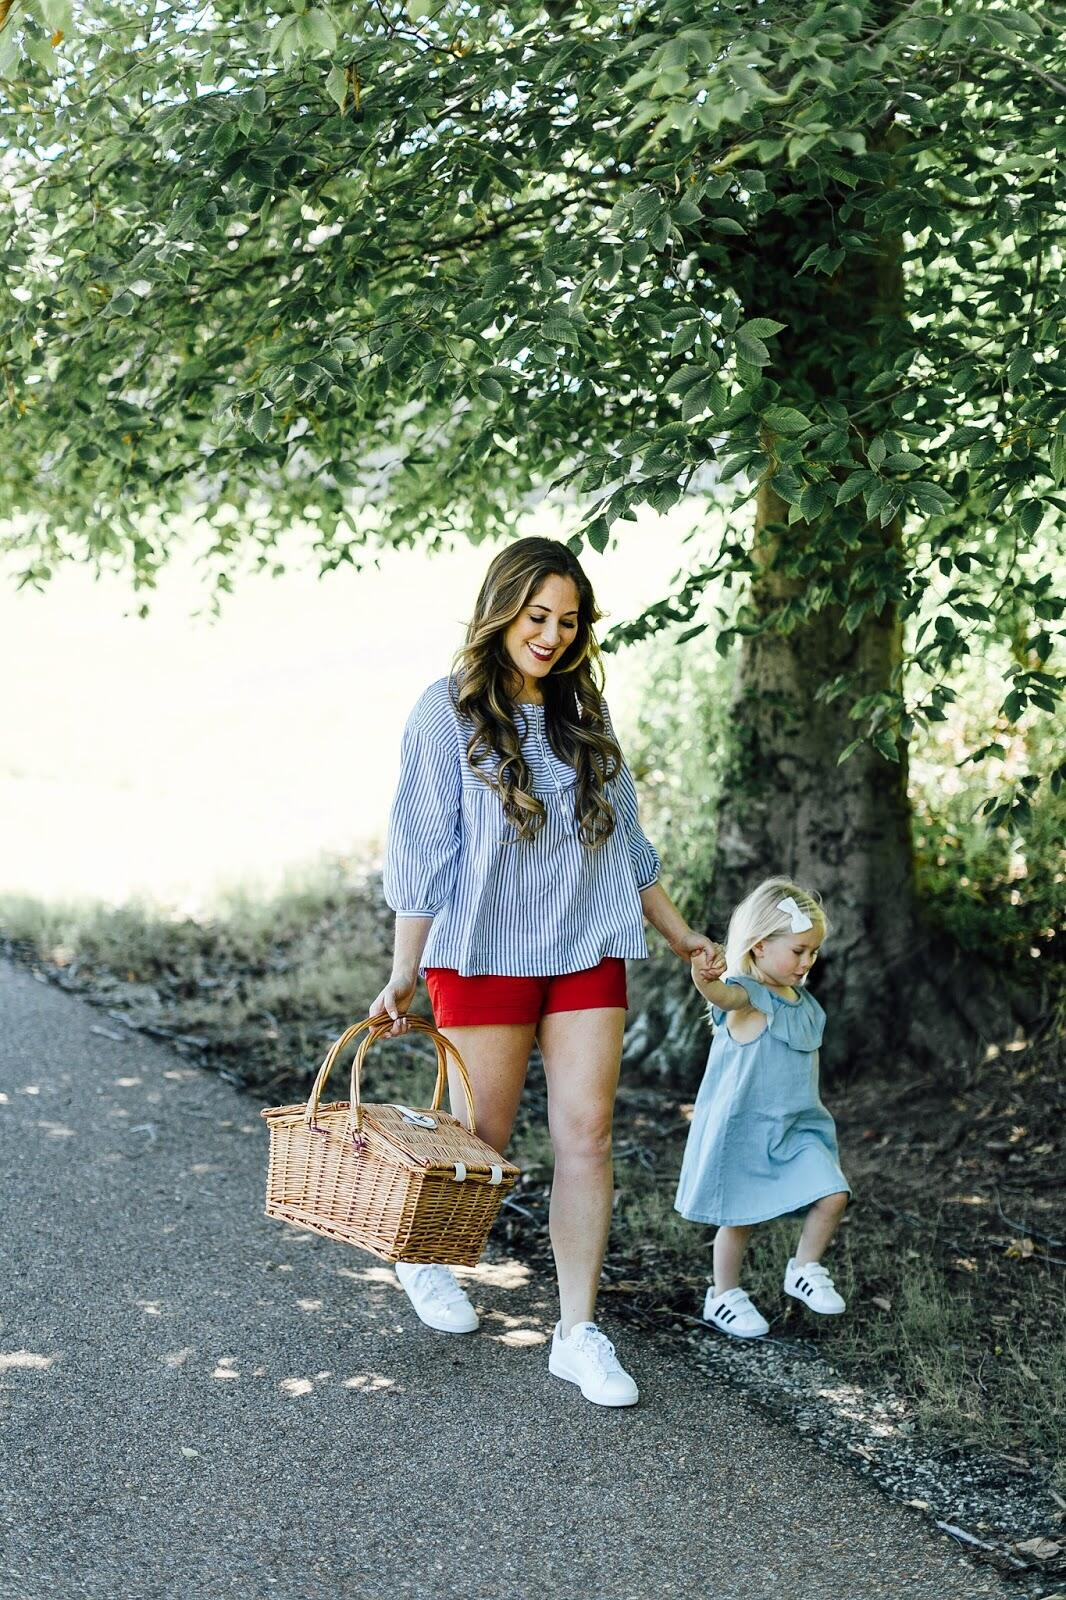 Trend Spin Linkup - Casual Style by fashion blogger Laura of Walking in Memphis in High Heels